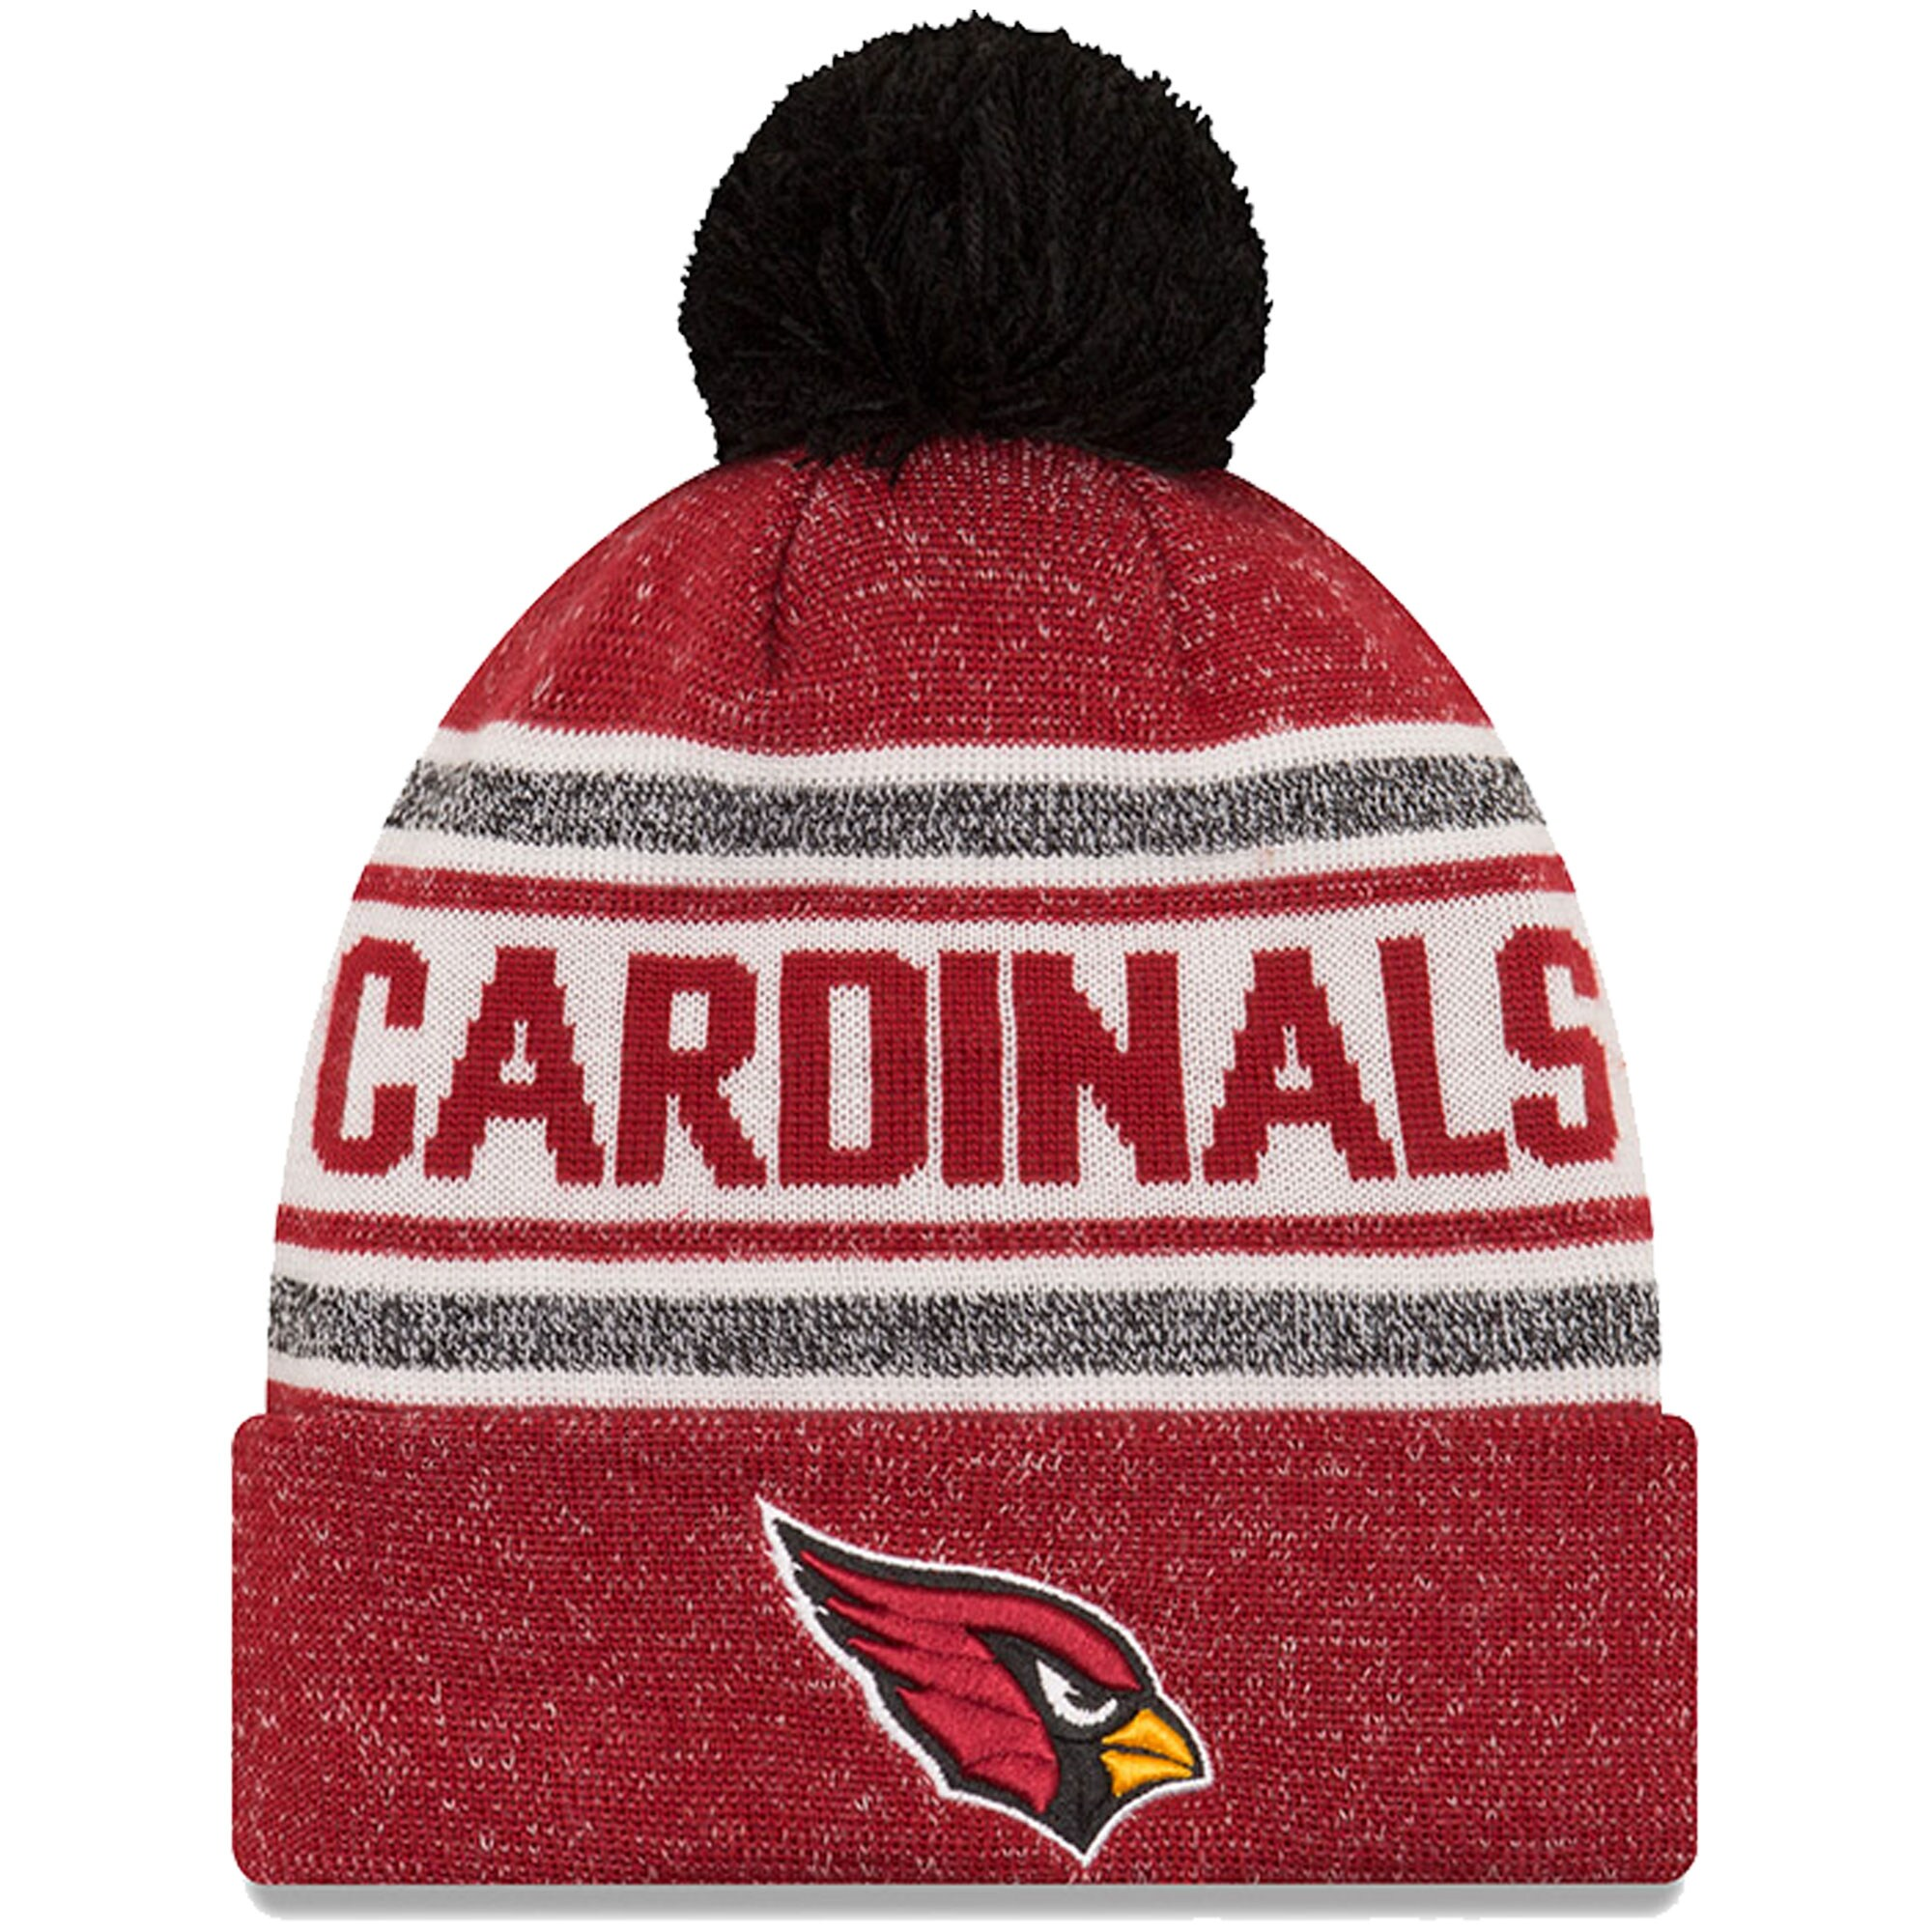 Arizona Cardinals New Era Toasty Cover Cuffed Knit Hat with Pom - Cardinal